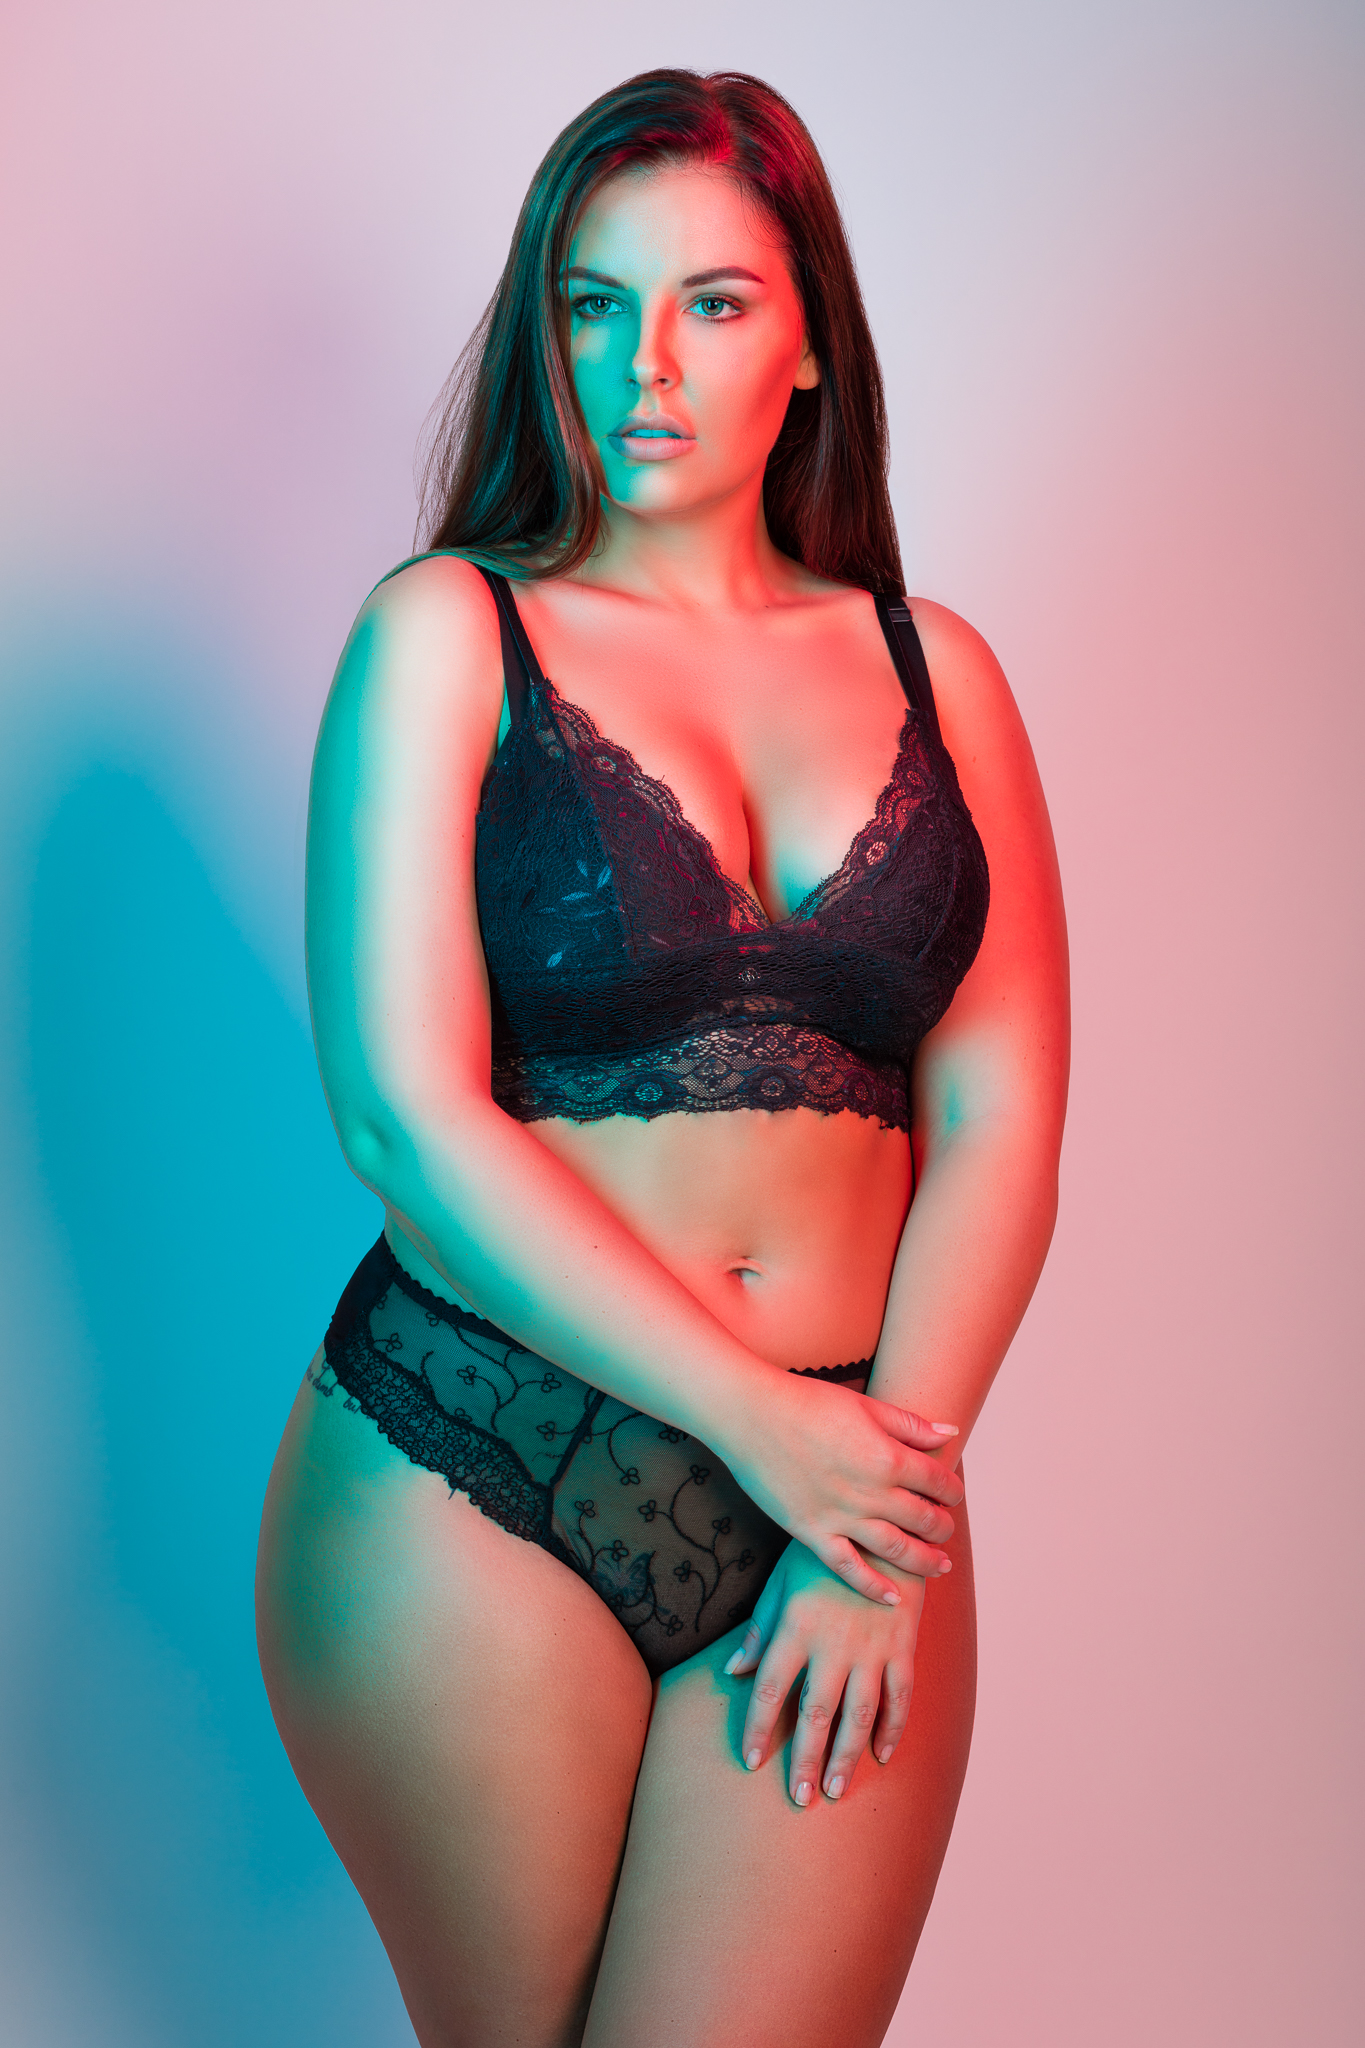 Curvy Model Sharon in Lingerie